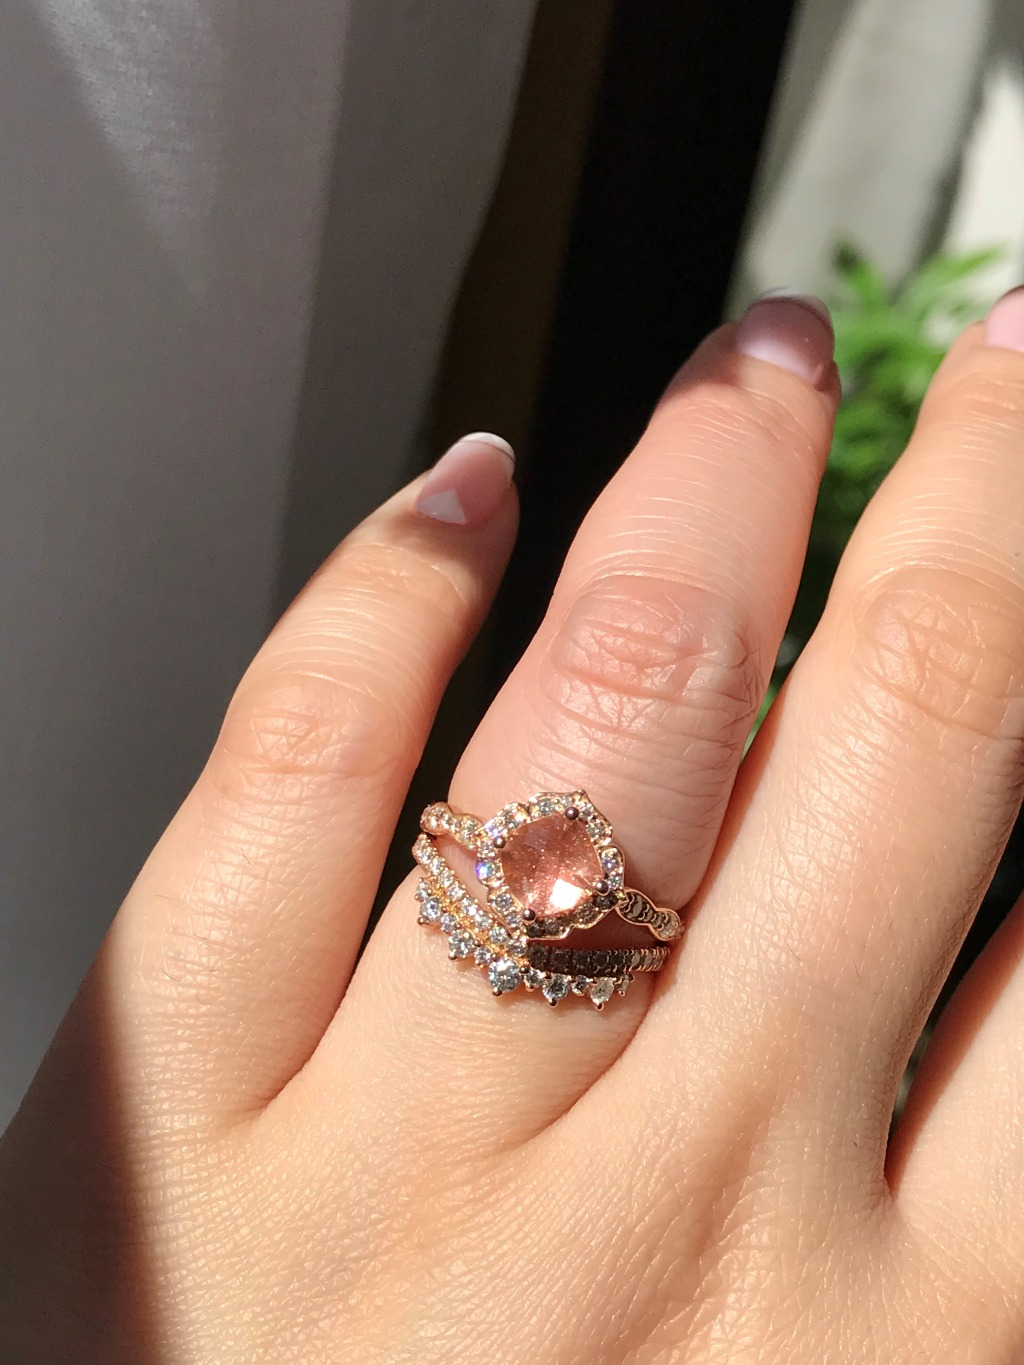 If you're looking for unique, look no further than this gorgeous mini vintage floral sunstone engagement ring topped above a crown